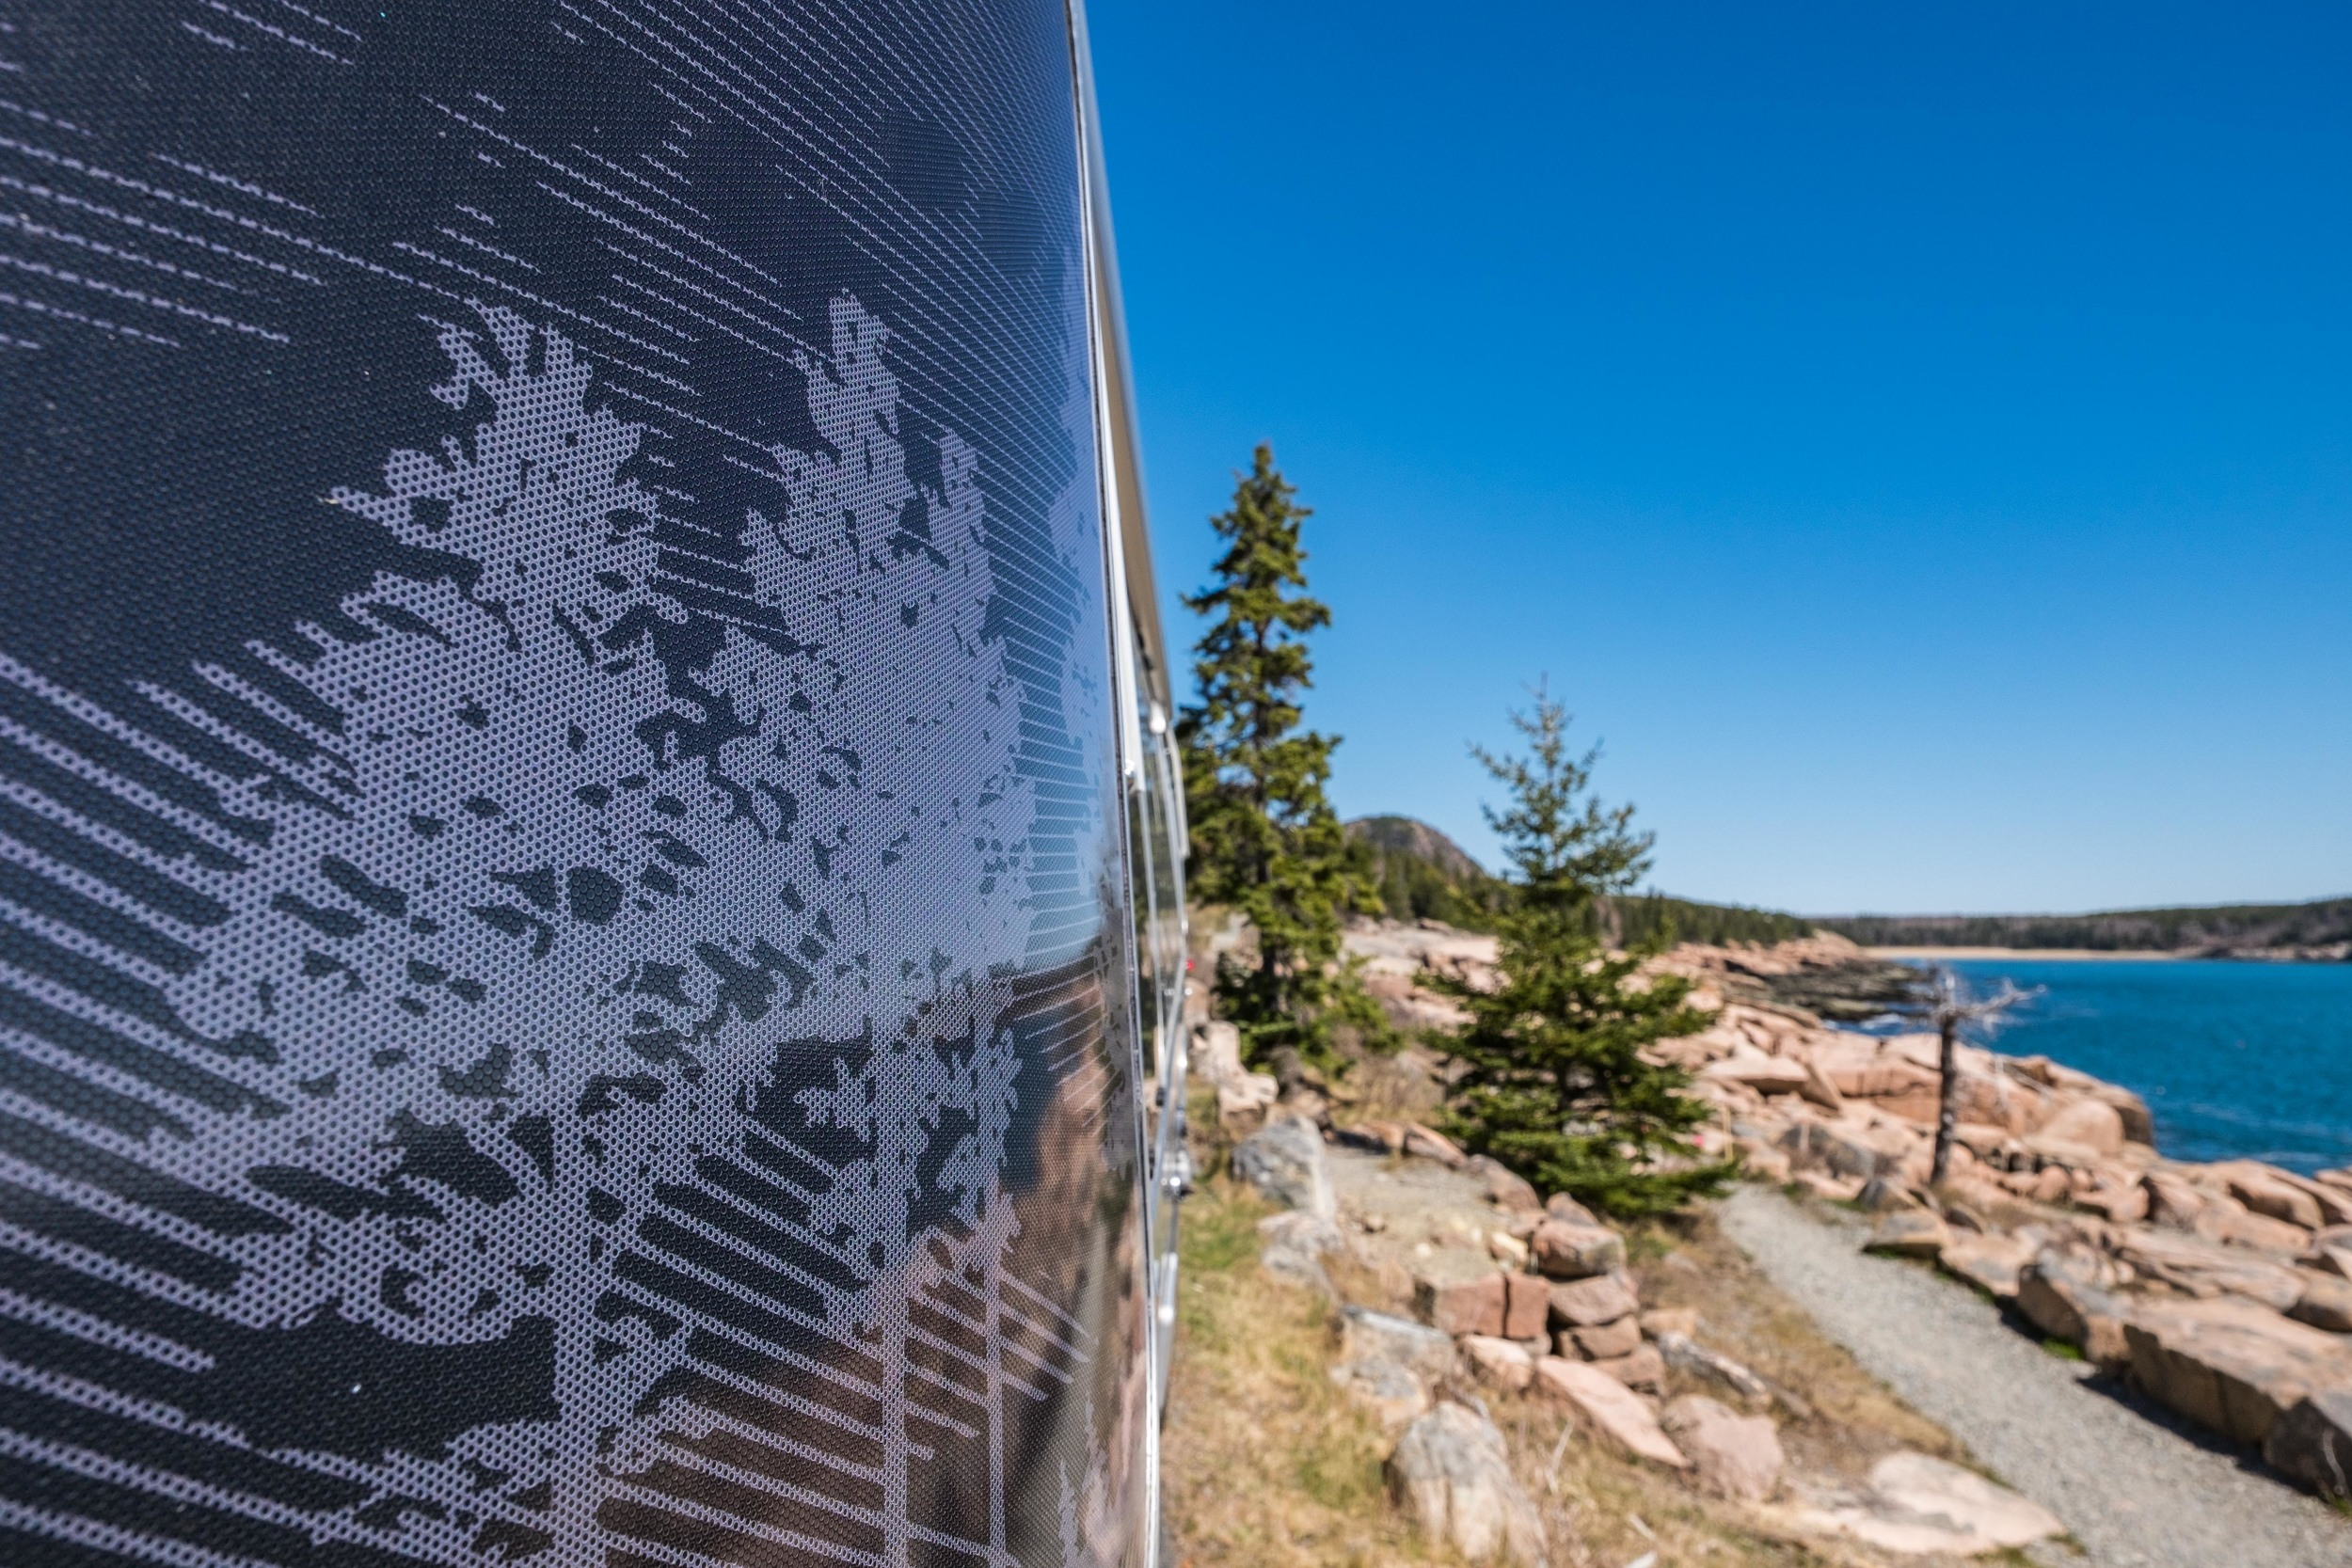 We think that it was Acadia that may have inspired the tree etchings on the Pendleton Airstream.